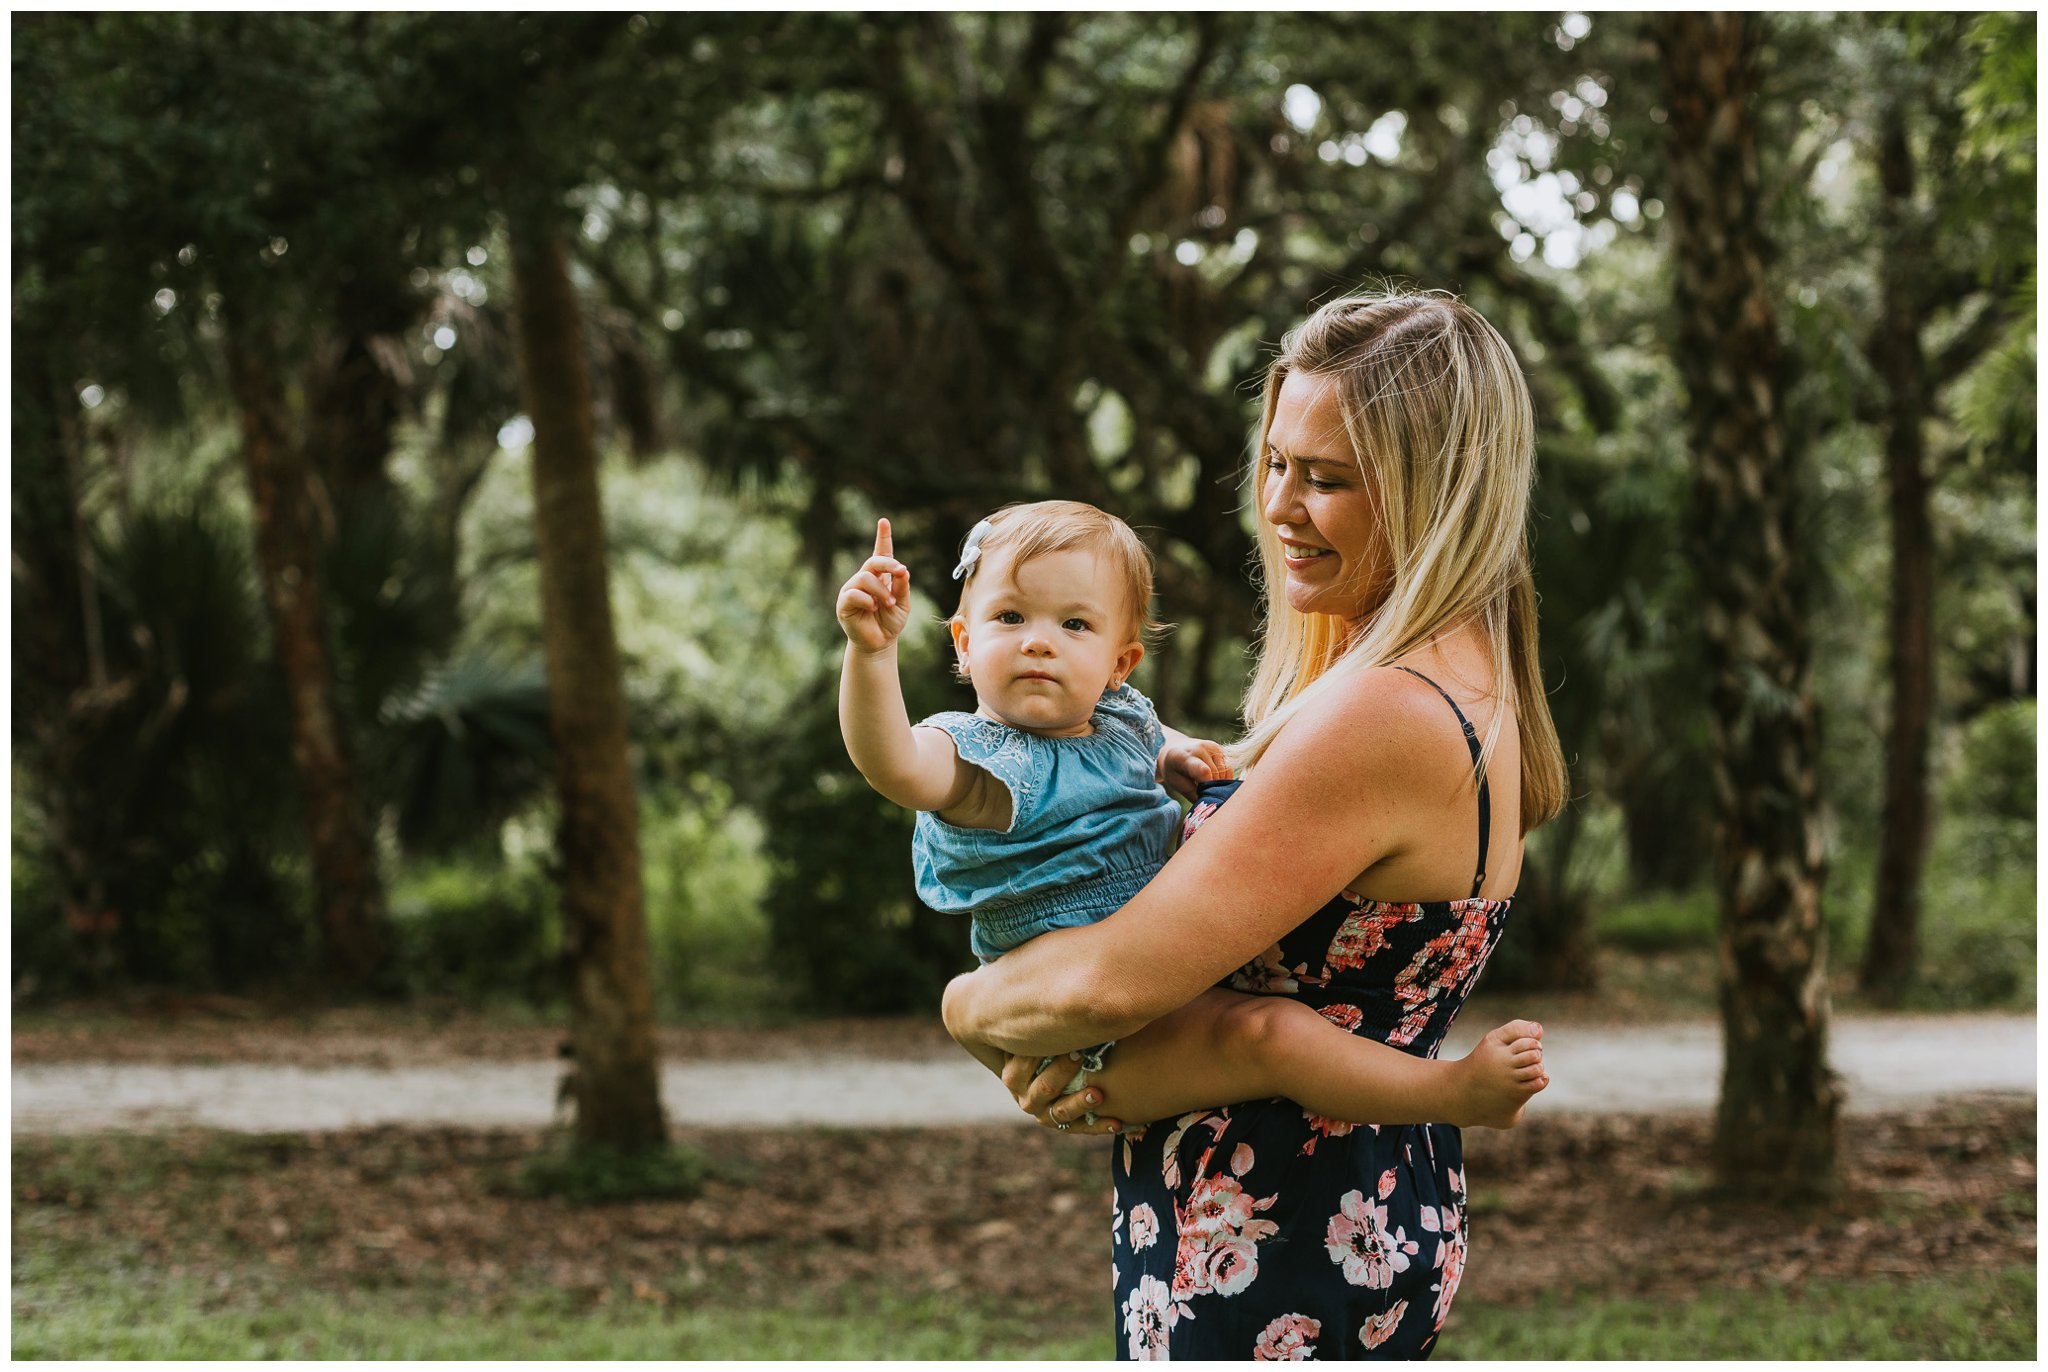 Kimberly Smith Photography| Jupiter Family Photography| Jupiter Florida Photographers| Palm Beach Family Photographers| Palm Beach Photographers | Riverbend Park Family Photos | Riverbend Park_0056.jpg